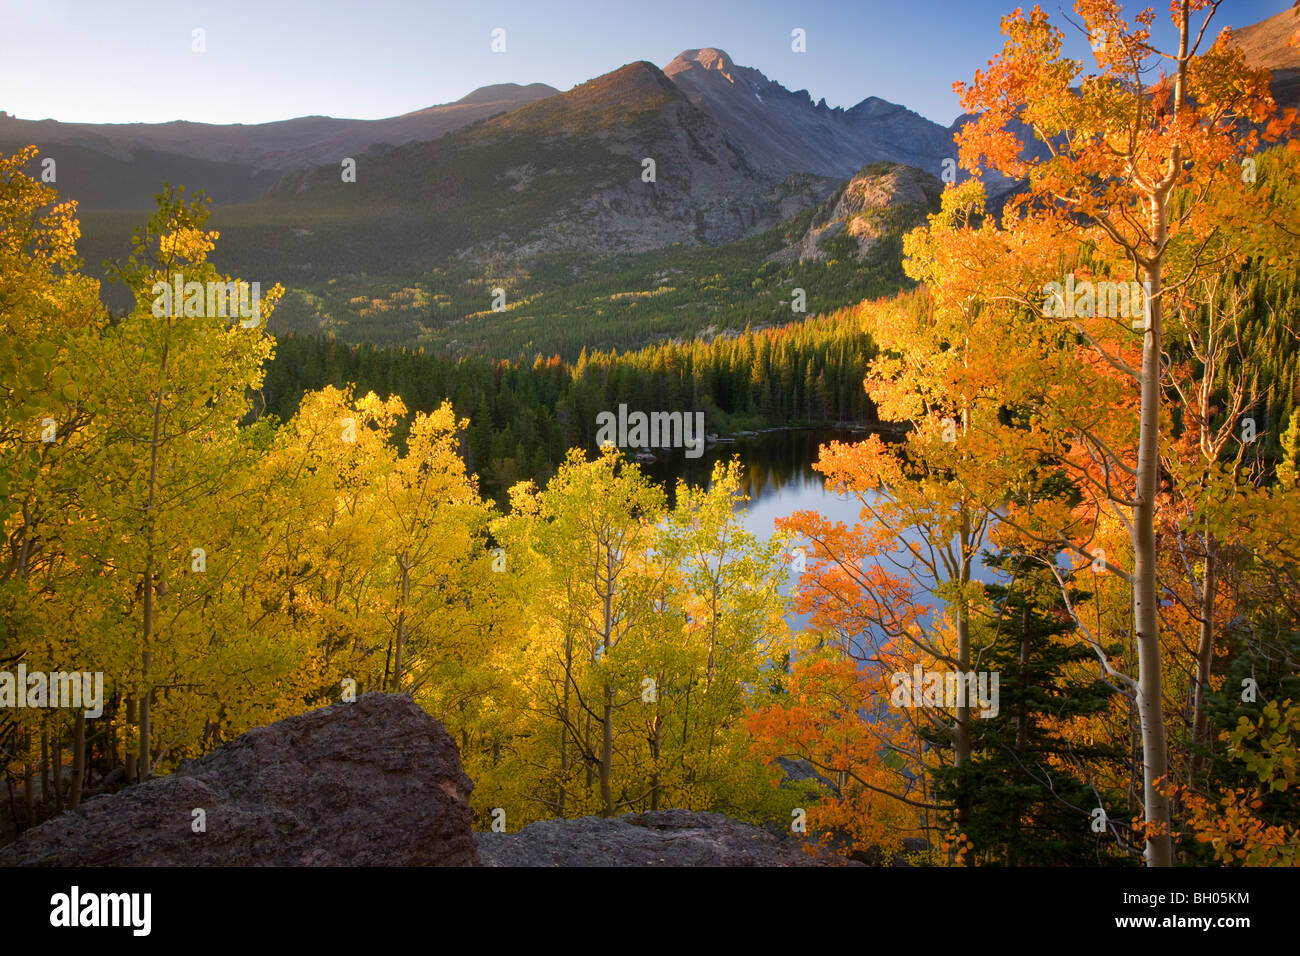 Couleurs d'automne au lac de l'Ours, Rocky Mountain National Park, Colorado. Photo Stock